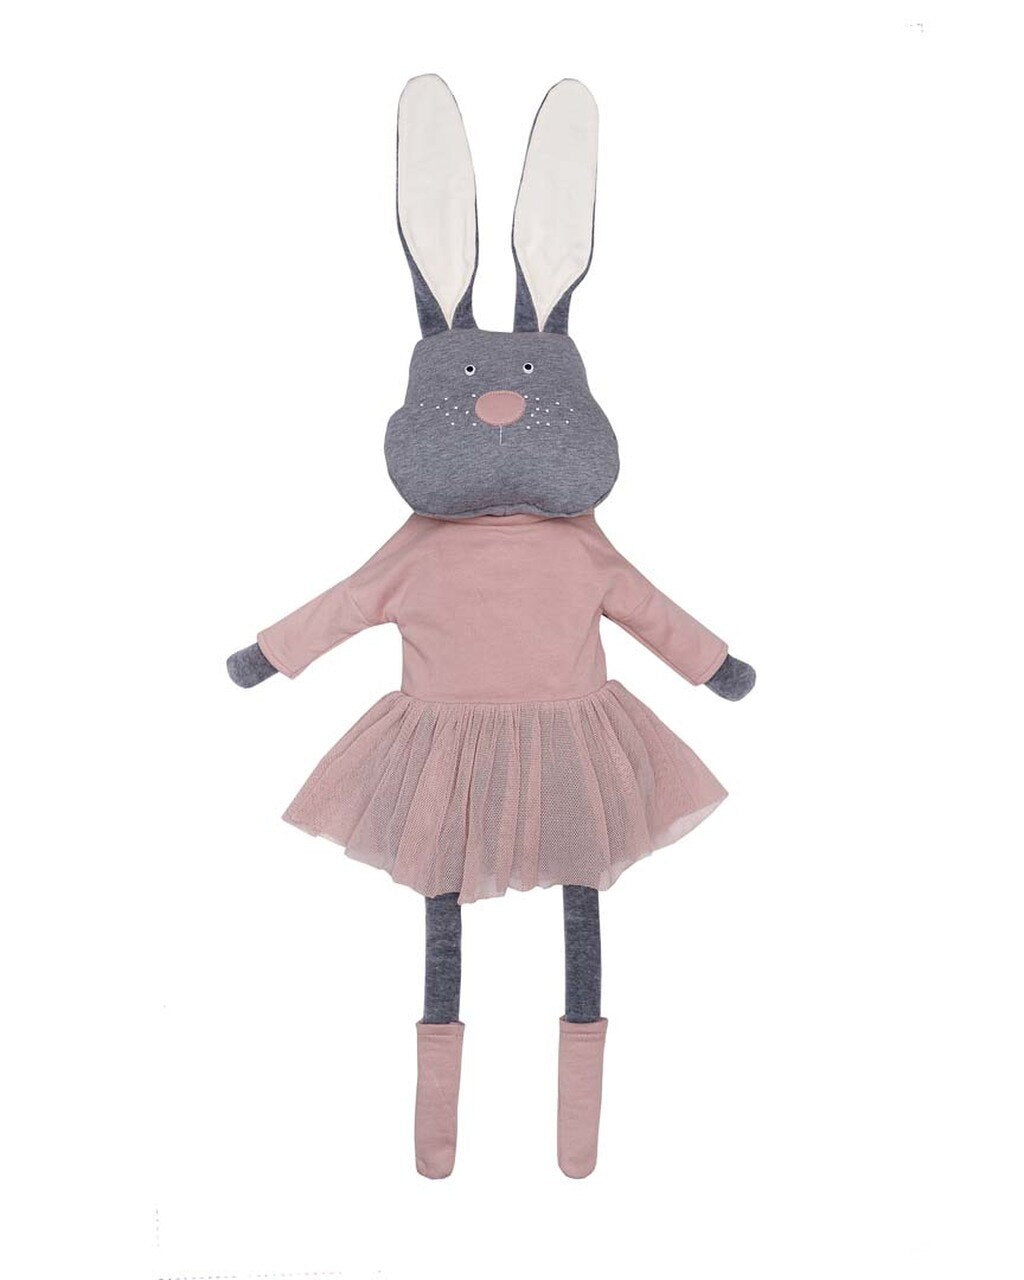 Toy Bunny with Pink tutu skirt. By Wooly Organic